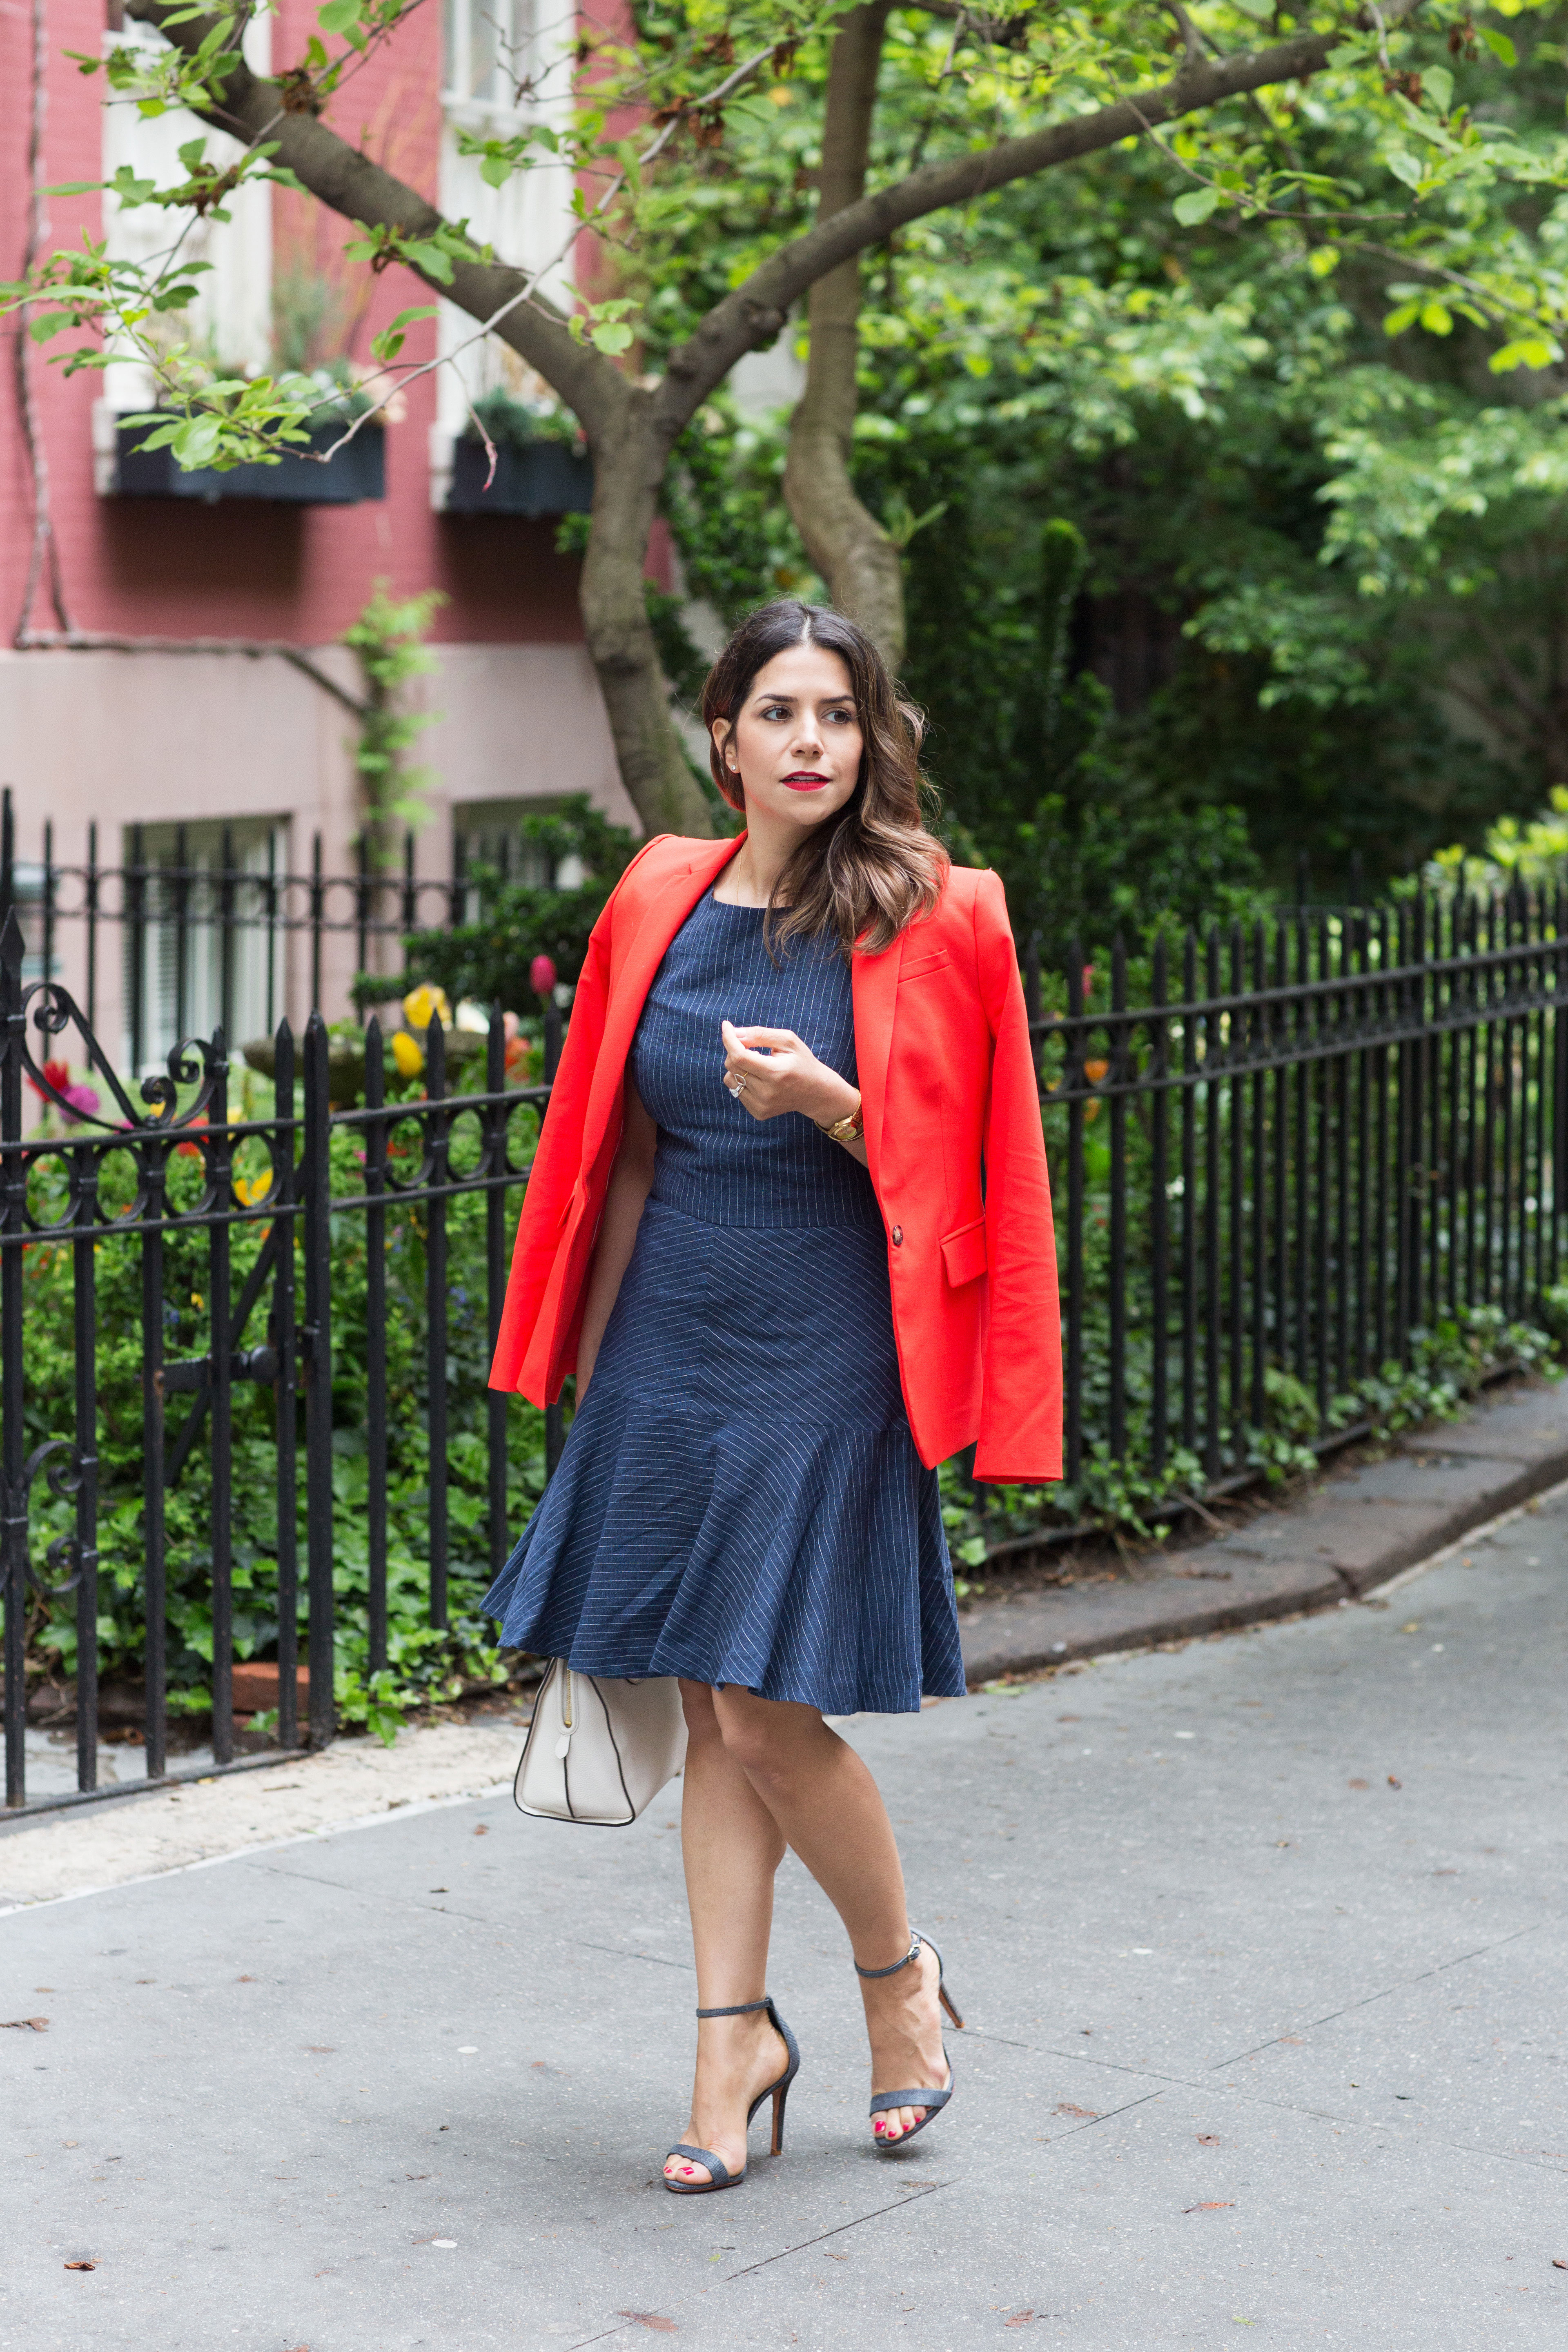 workwear-outfit-for-spring-wearing-Banana-Republic-Red-Blazer-with-denim-dress-and-white-coach-purse1